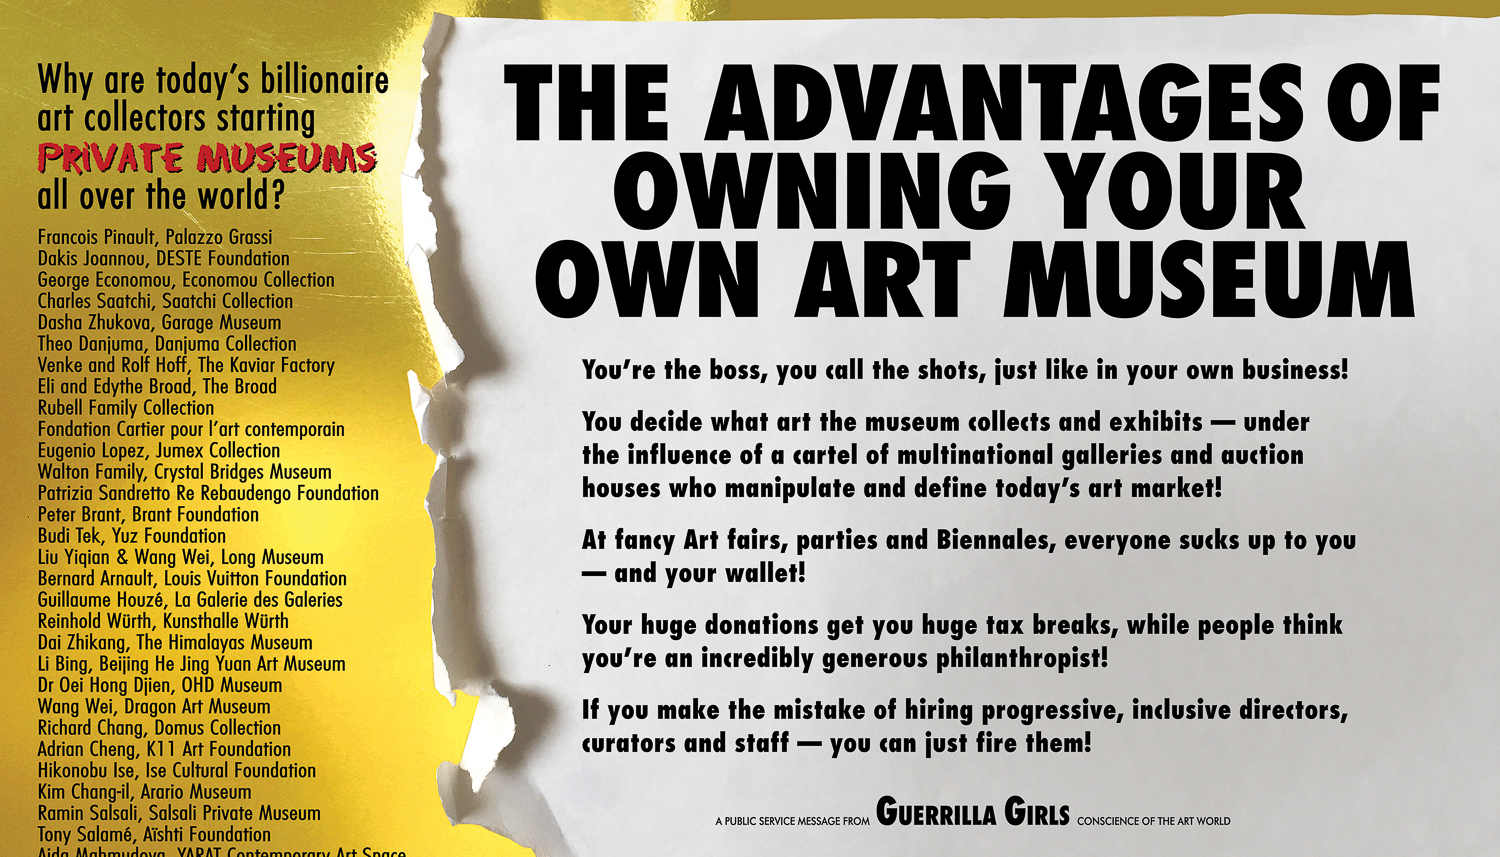 Advantages of owning your own Art Museum